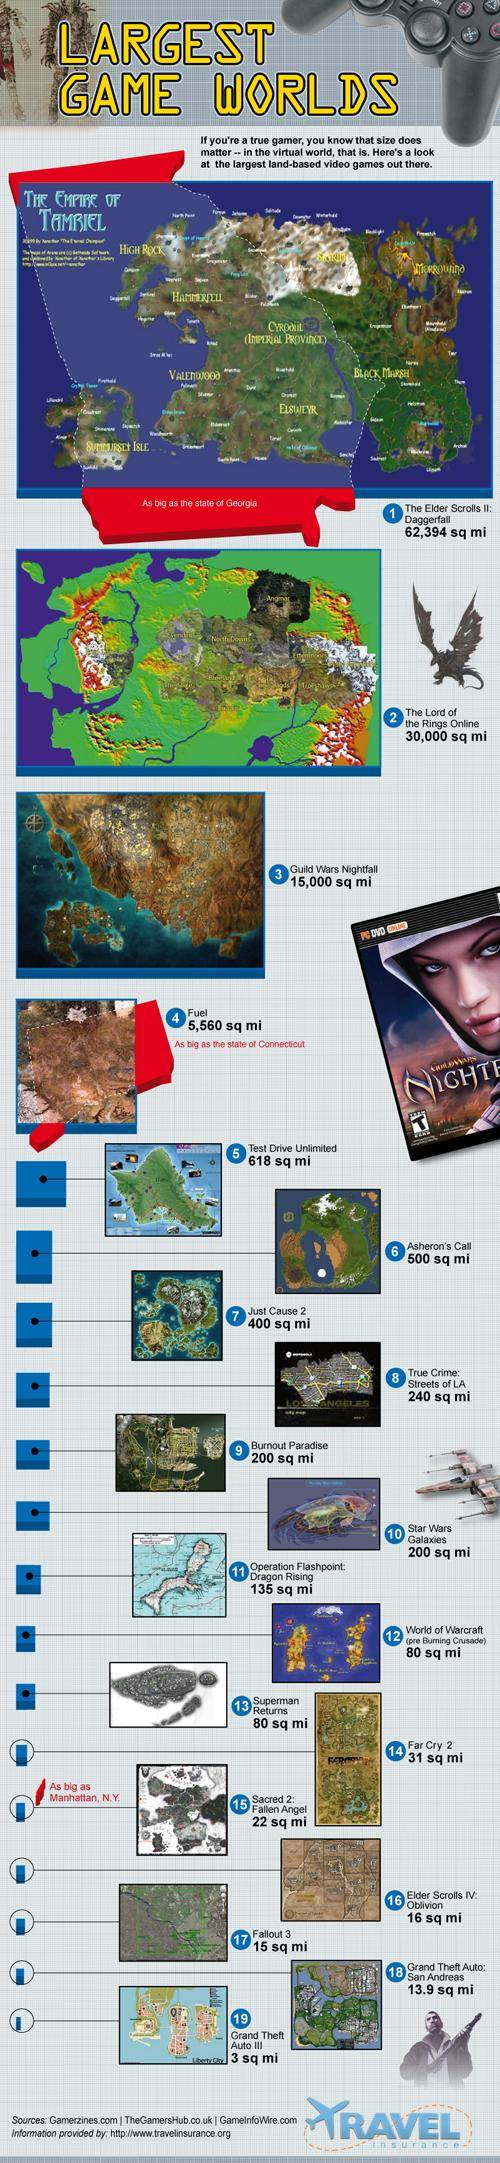 Ten largest worlds in video games video game news reviews today gumiabroncs Image collections